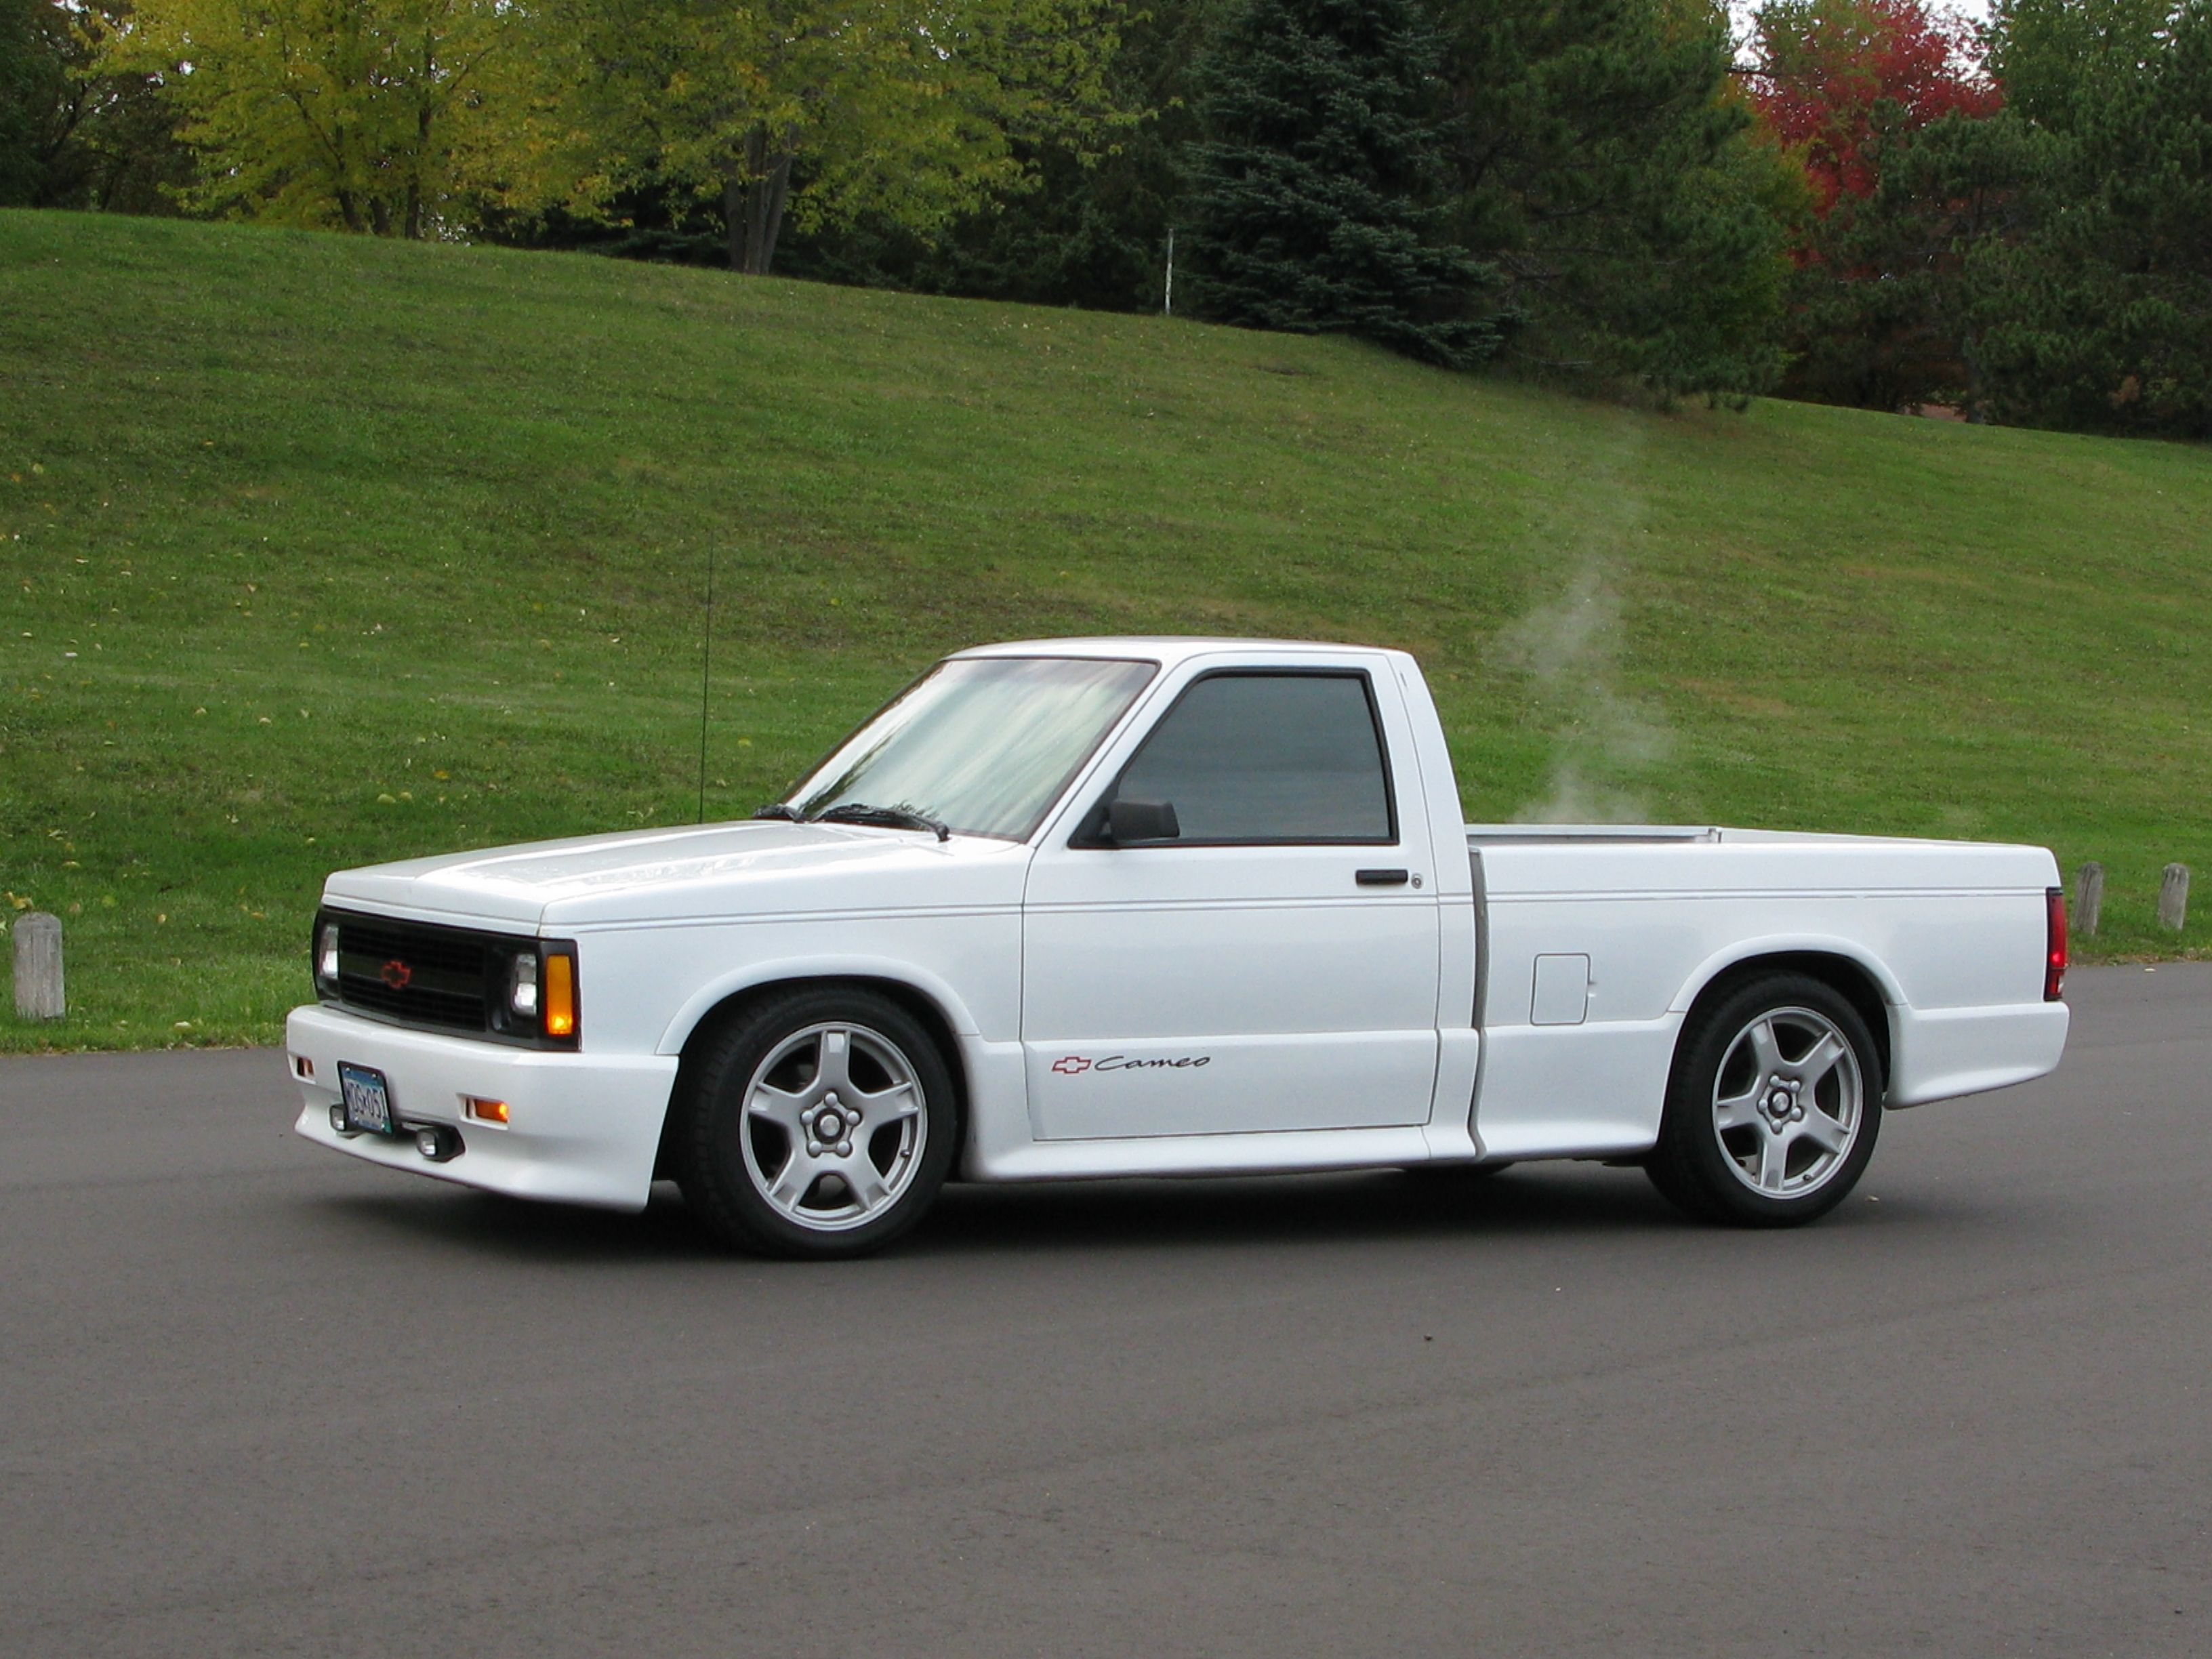 1991 S10 Cameo  Lowered with C5 wheels, quick-ratio steering box and